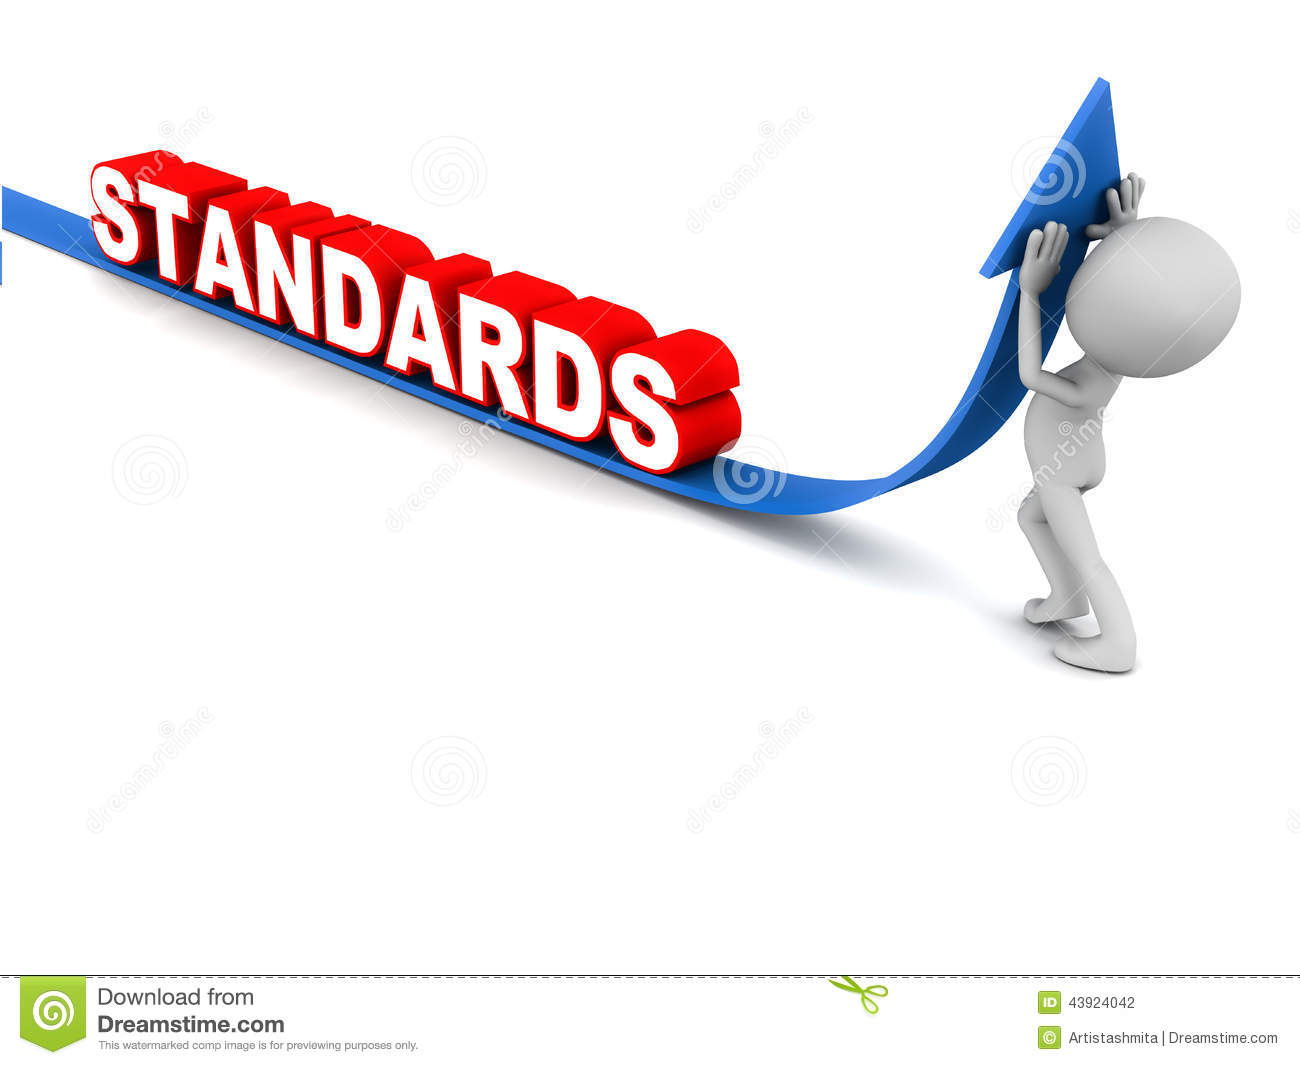 Rising standards conce...